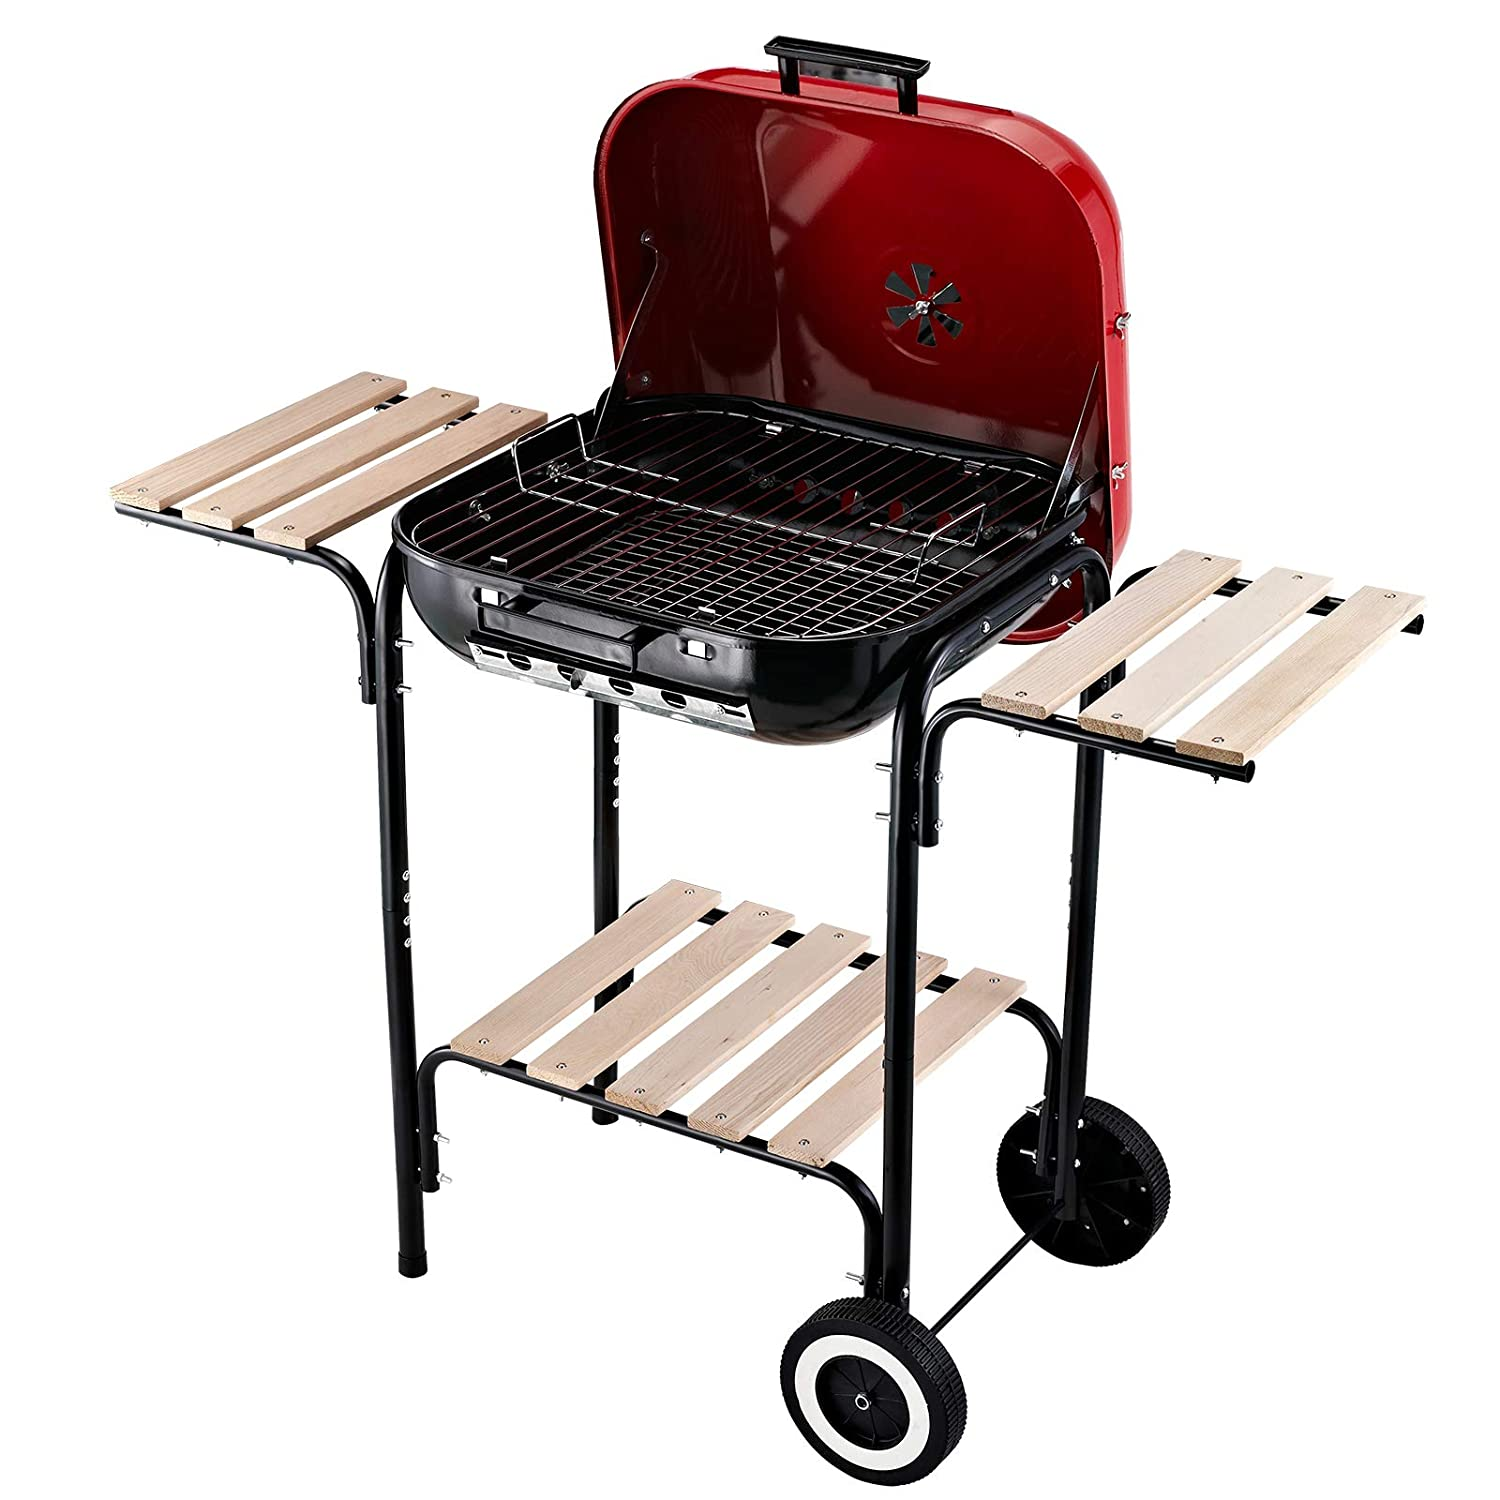 Amazon.com: Outsunny Charcoal BBQ Trolley Barbecue Grill ...